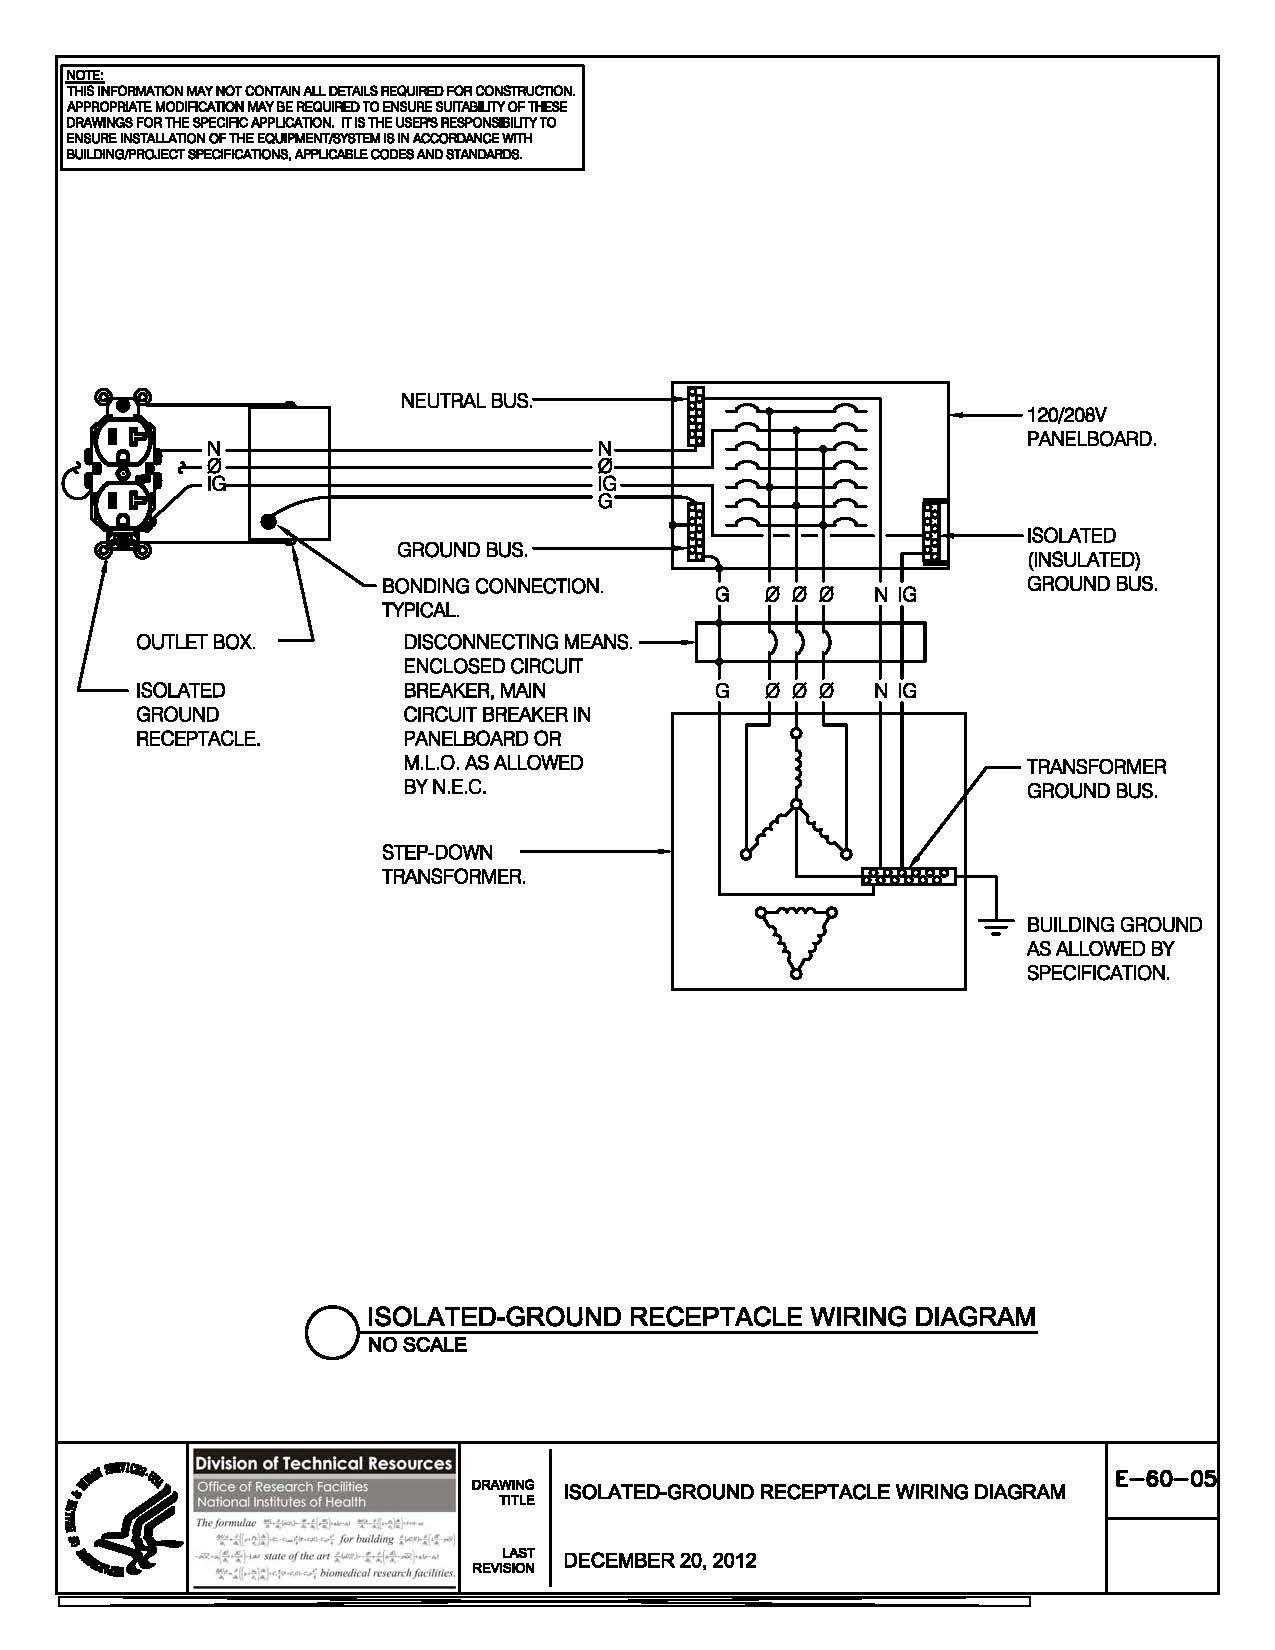 3 Phase isolation Transformer Wiring Diagram | Free Wiring ...